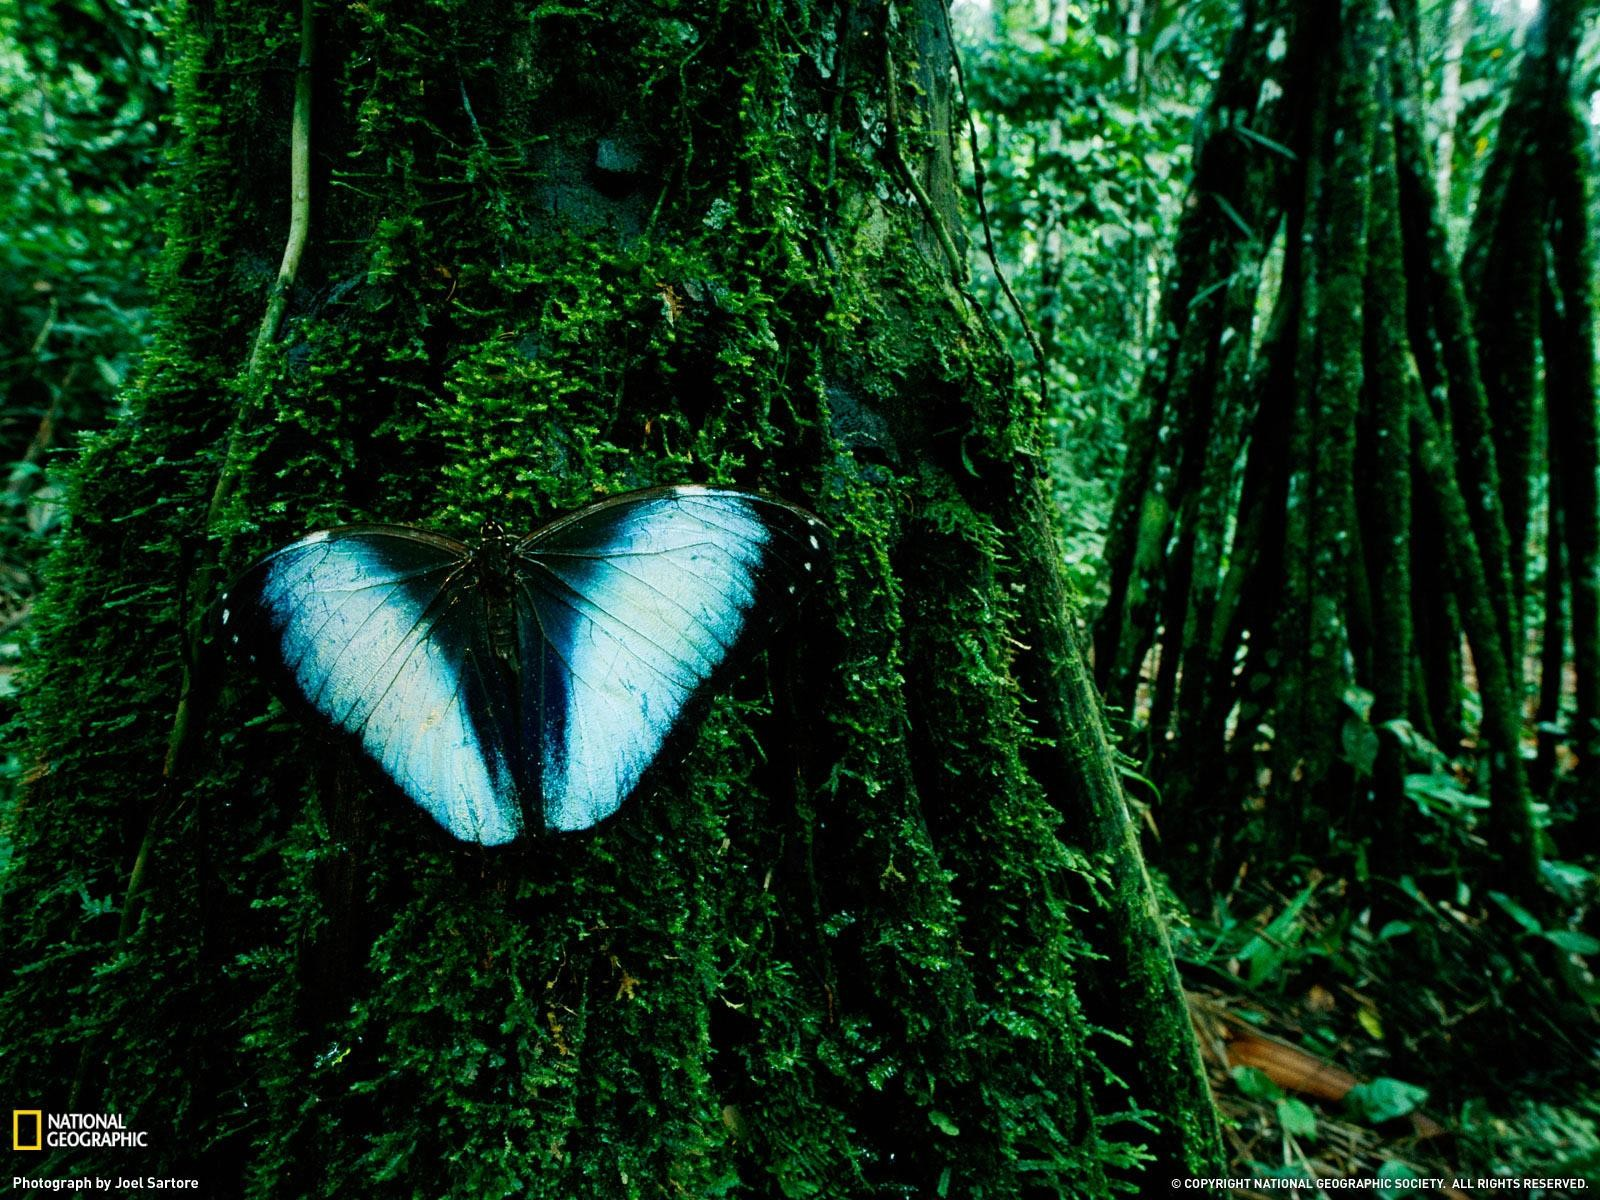 http://2.bp.blogspot.com/-BM__TRIsfzs/TjgNEQxHjKI/AAAAAAAACds/qGKM6-hmMK0/s1600/The_Rainforest_HD_Wallpaper_.jpg